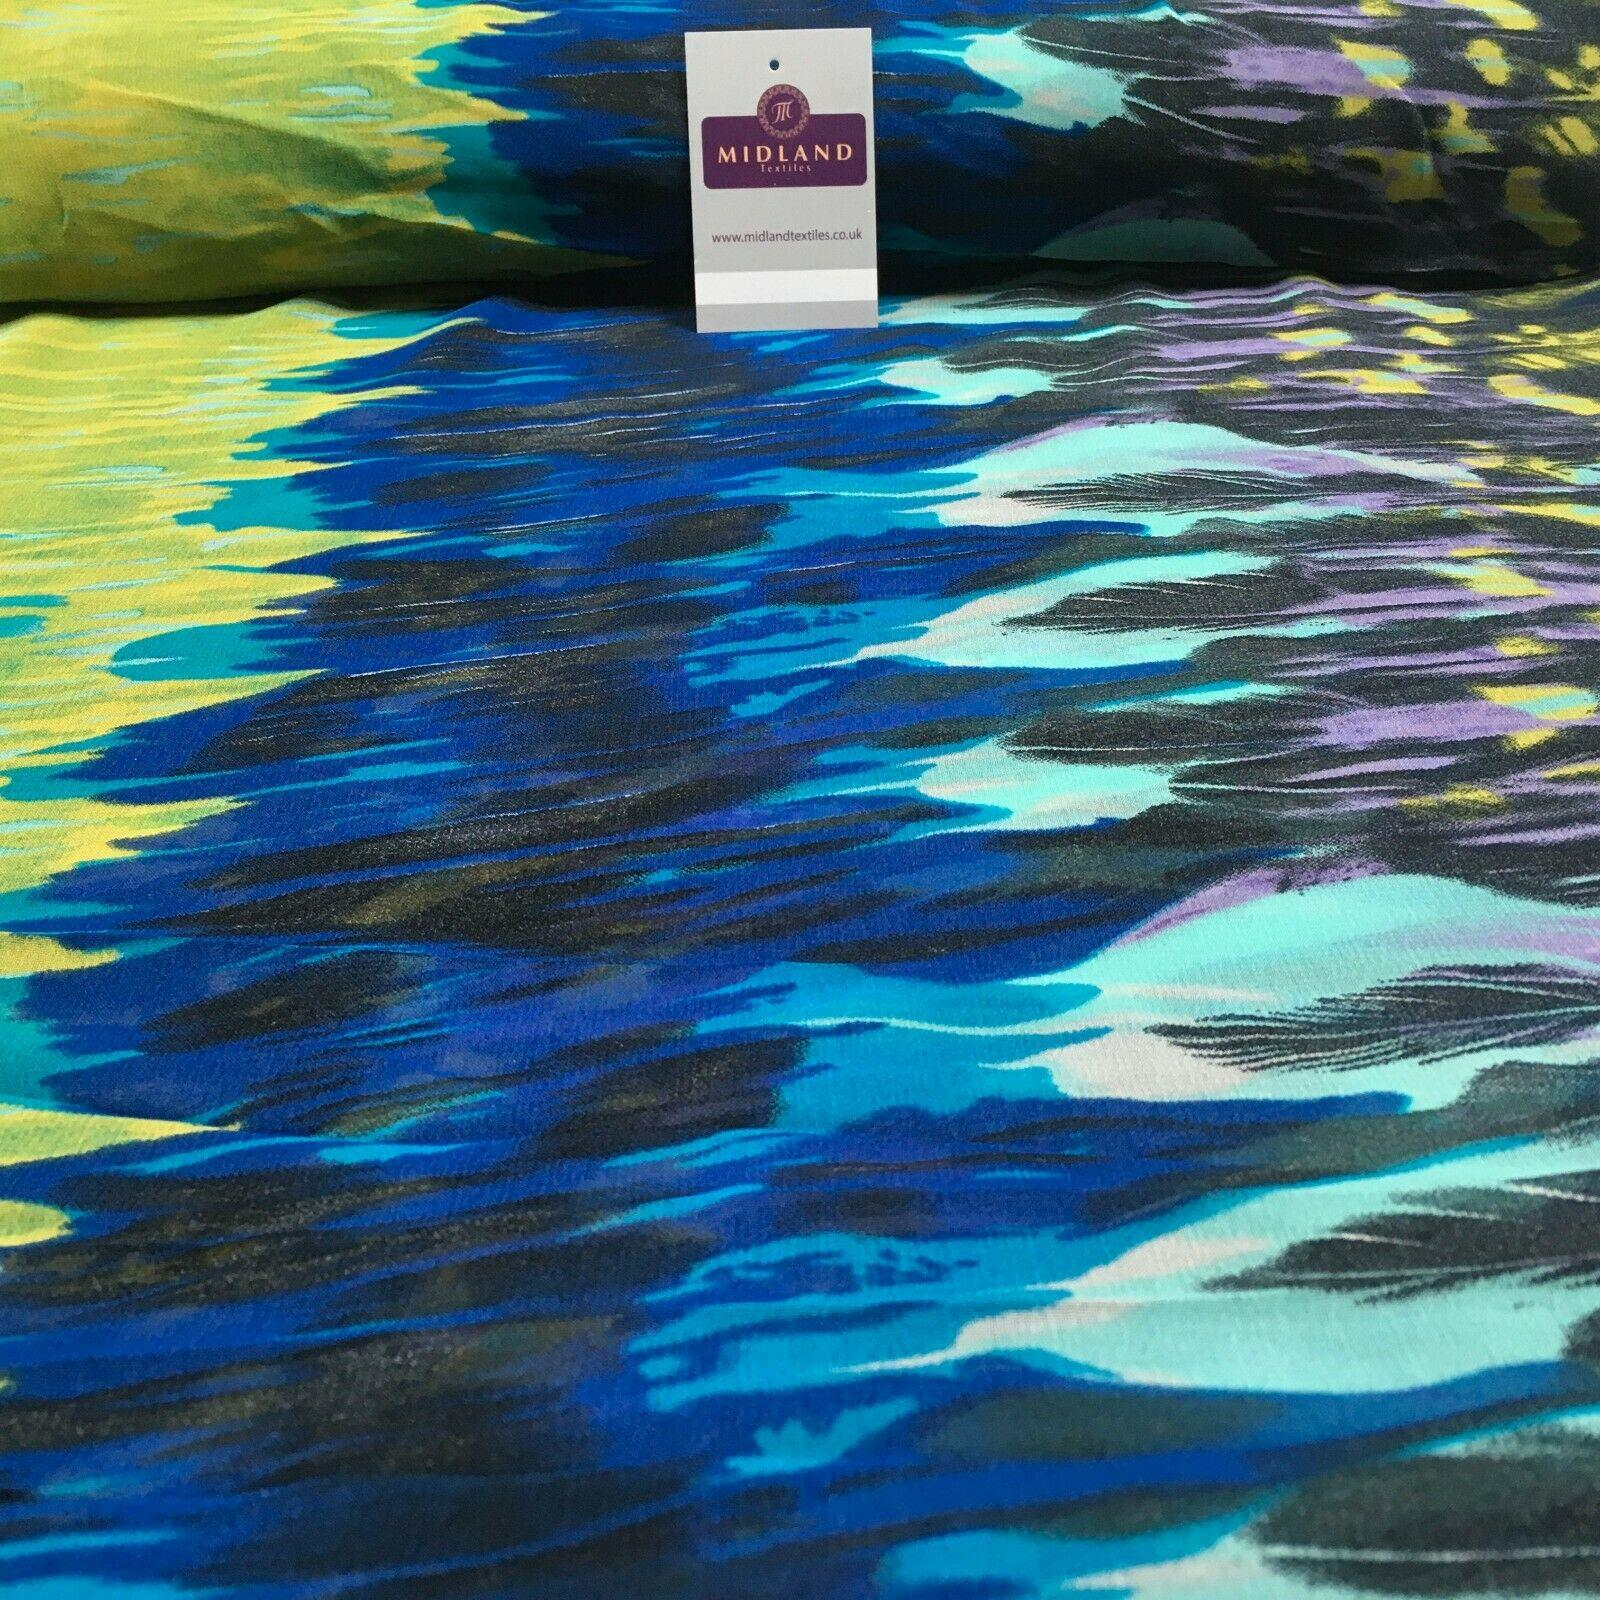 Olive Blue Abstract Border Crepe Printed Chiffon Fabric 110 cm Wide M1358-3 Mtex